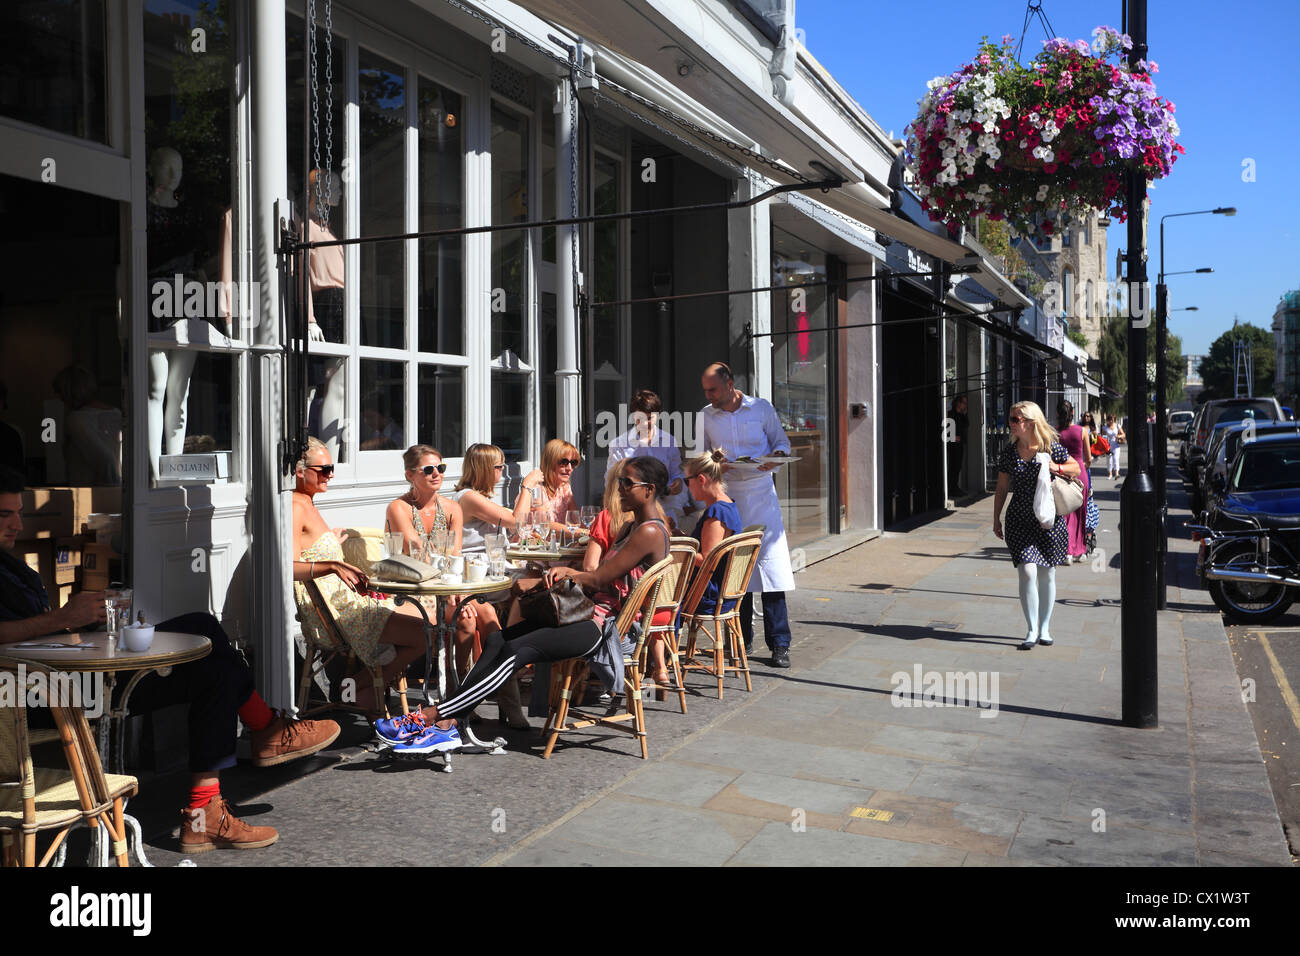 Cafes in Westbourne Grove Notting Hill London W11 - Stock Image